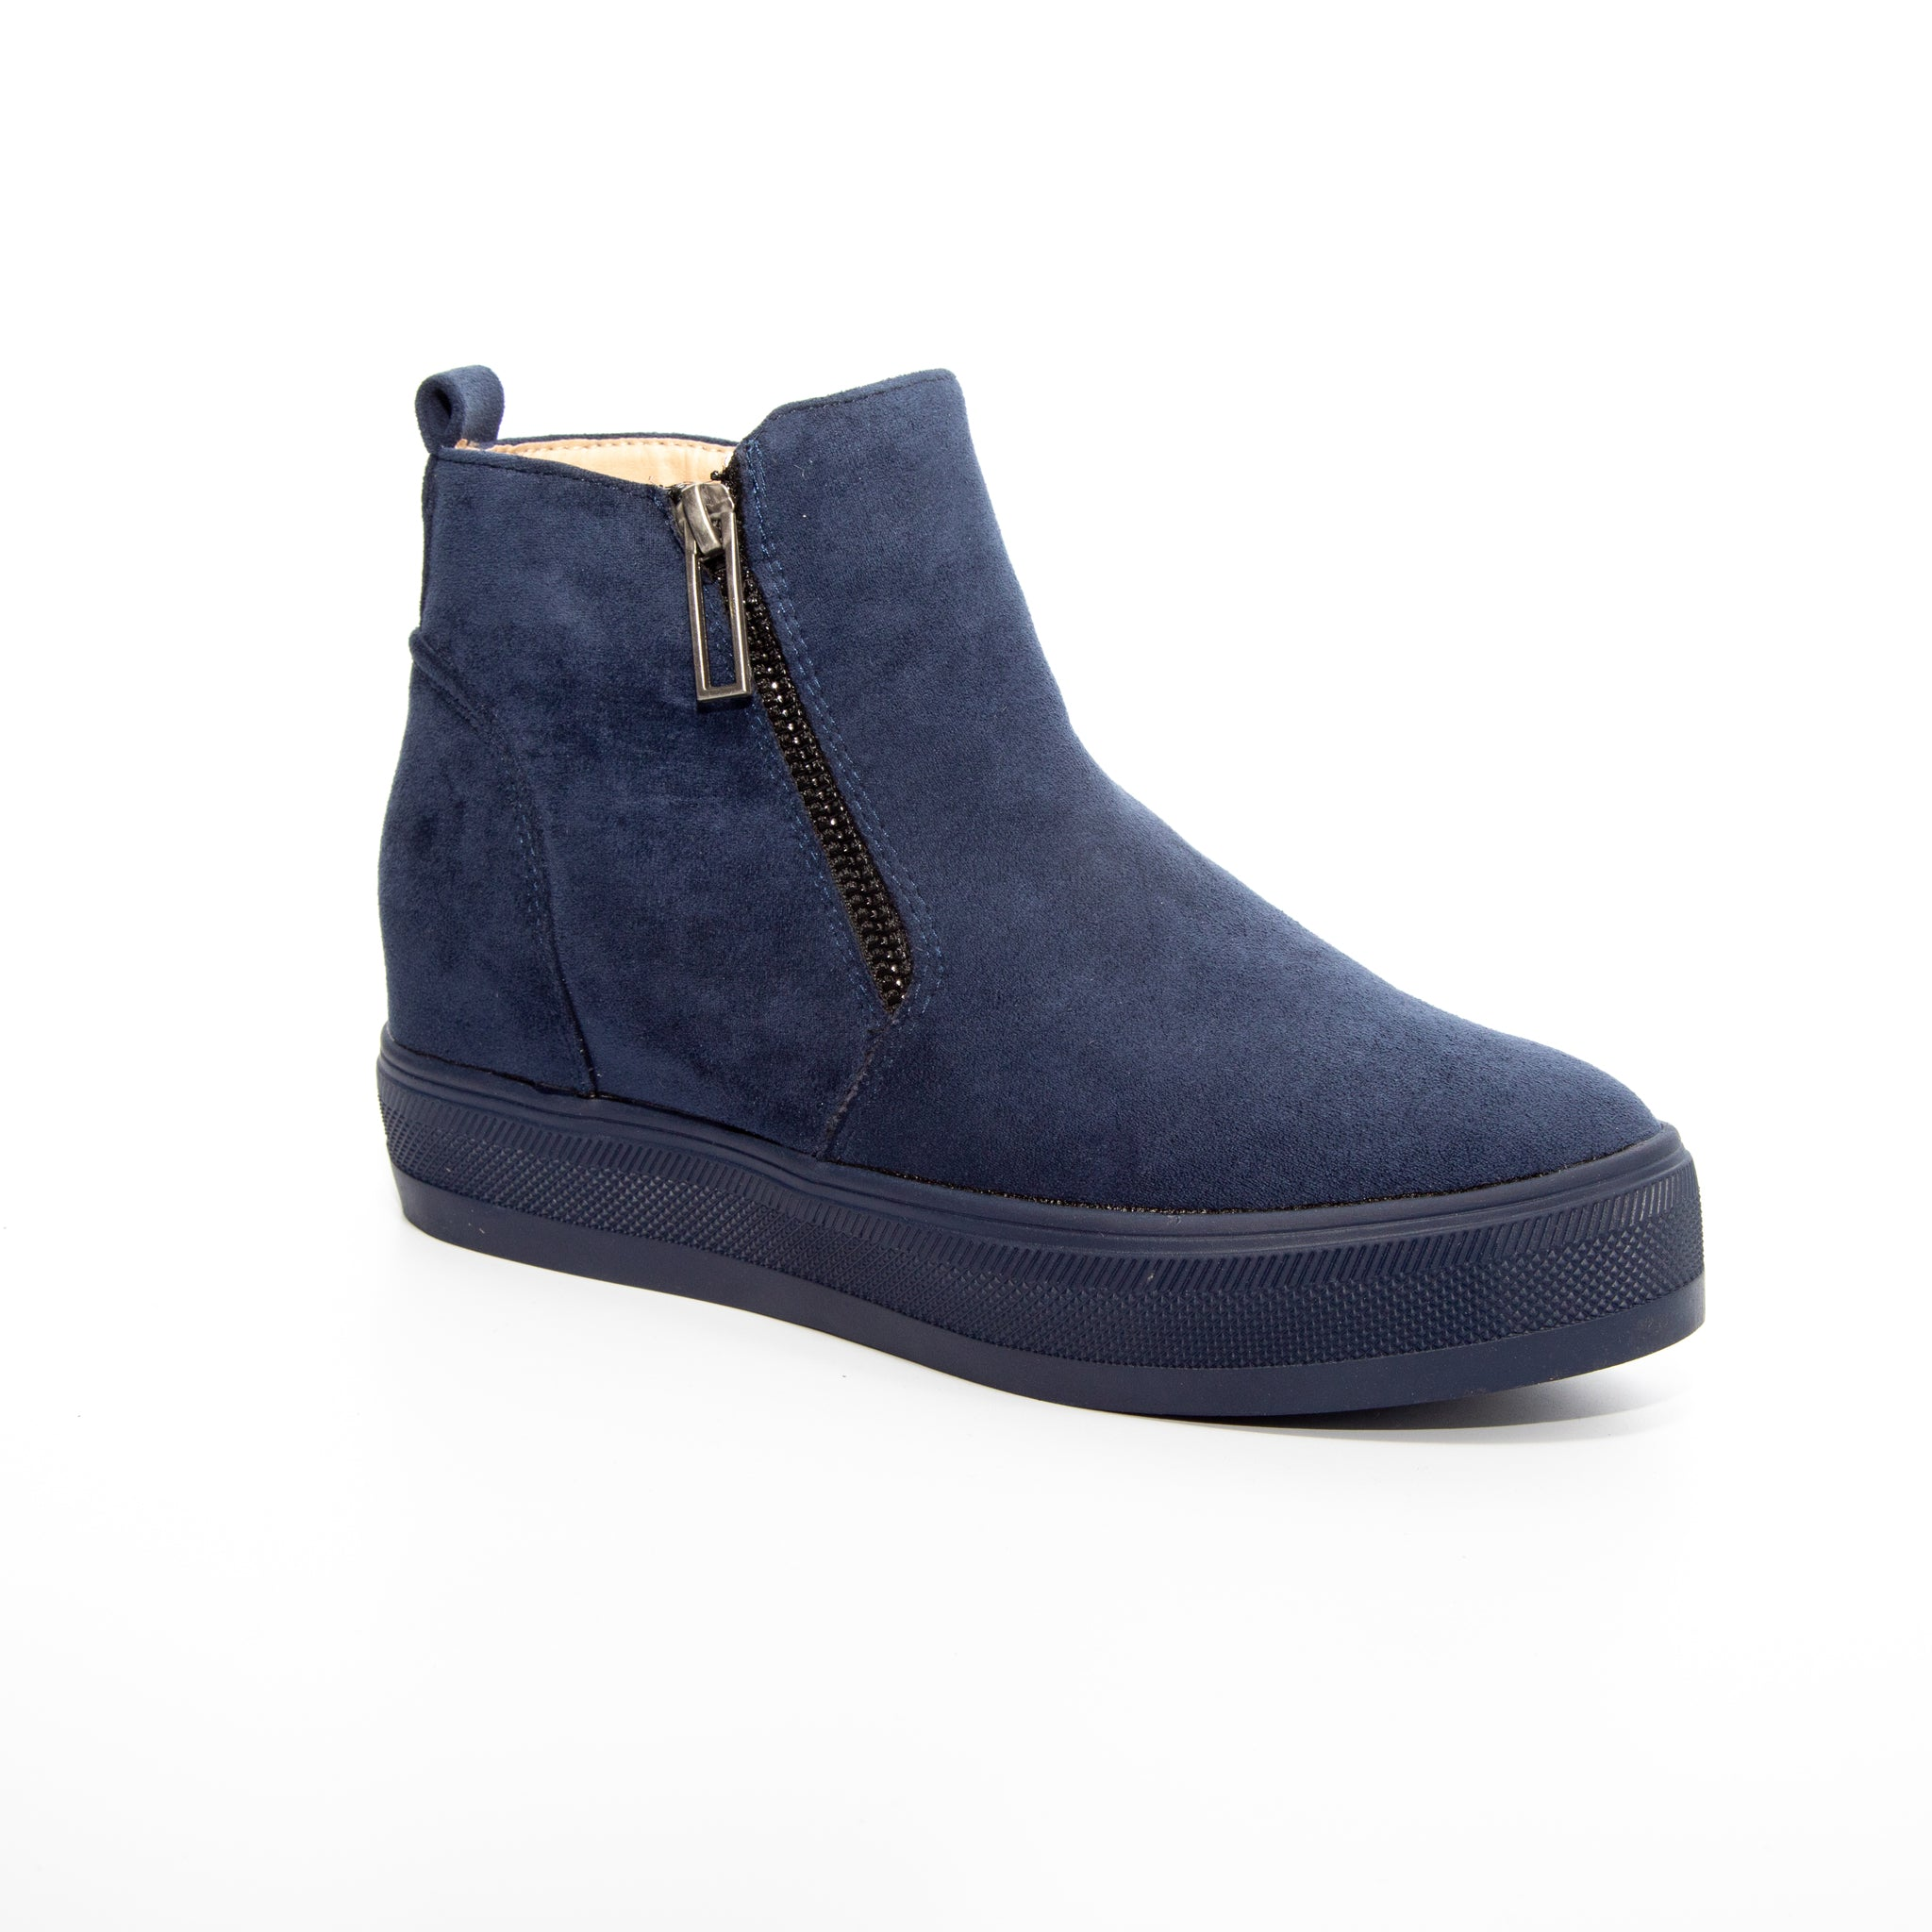 Solo by Dolce Nome | Flat Zipper Ankle Boots in Navy (main view)